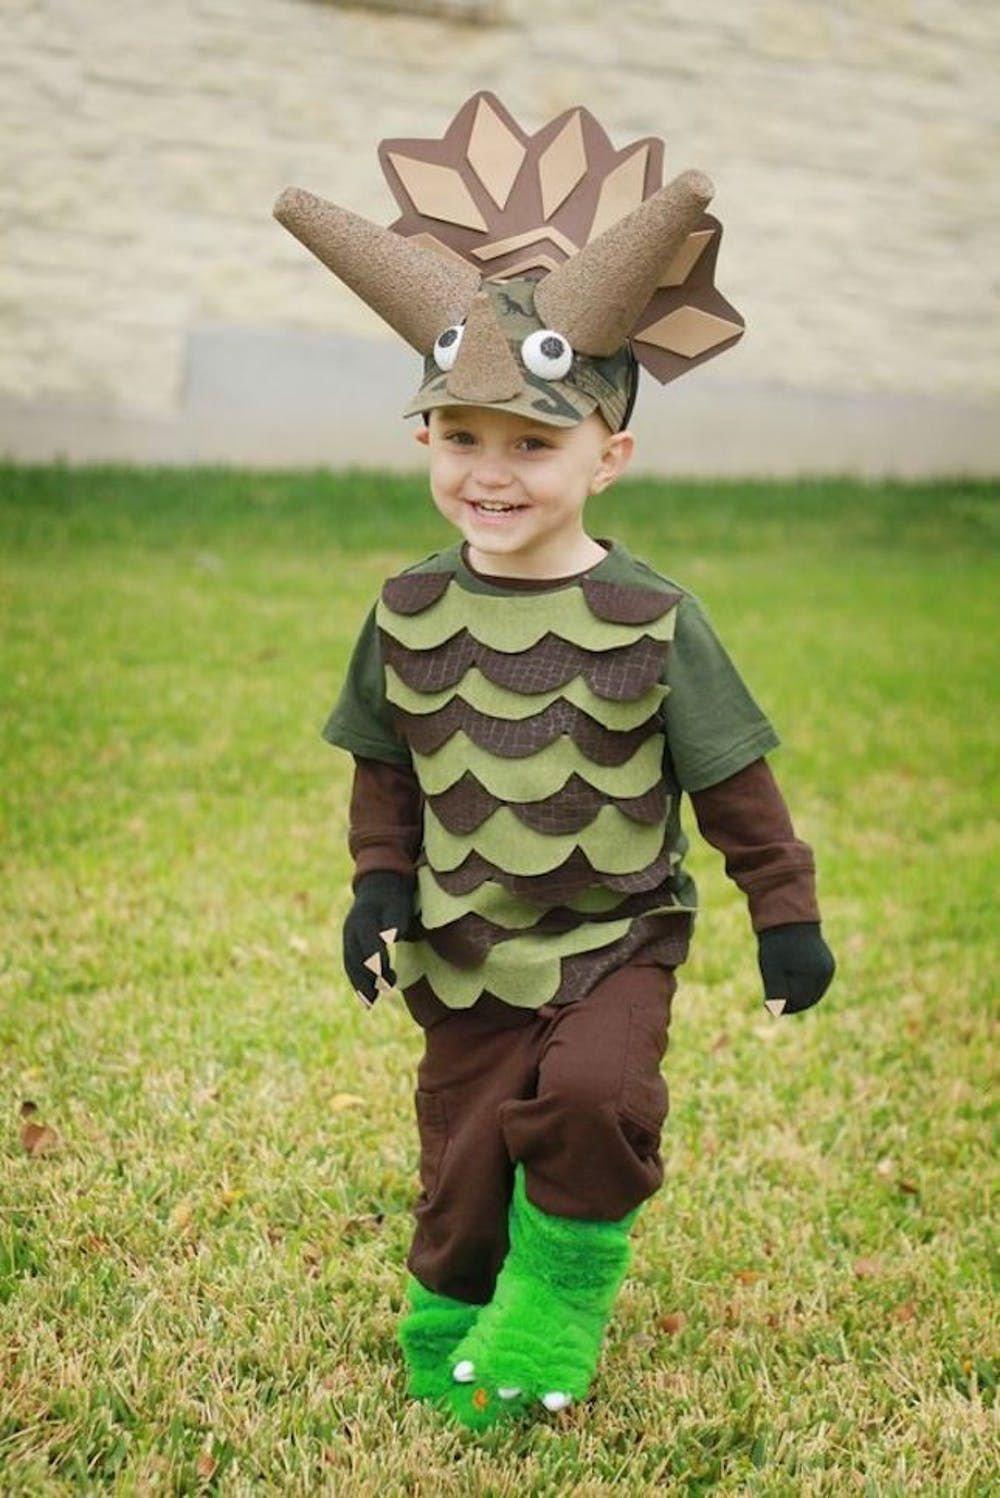 9 Dinosaur Halloween Costumes for Every Age Kids